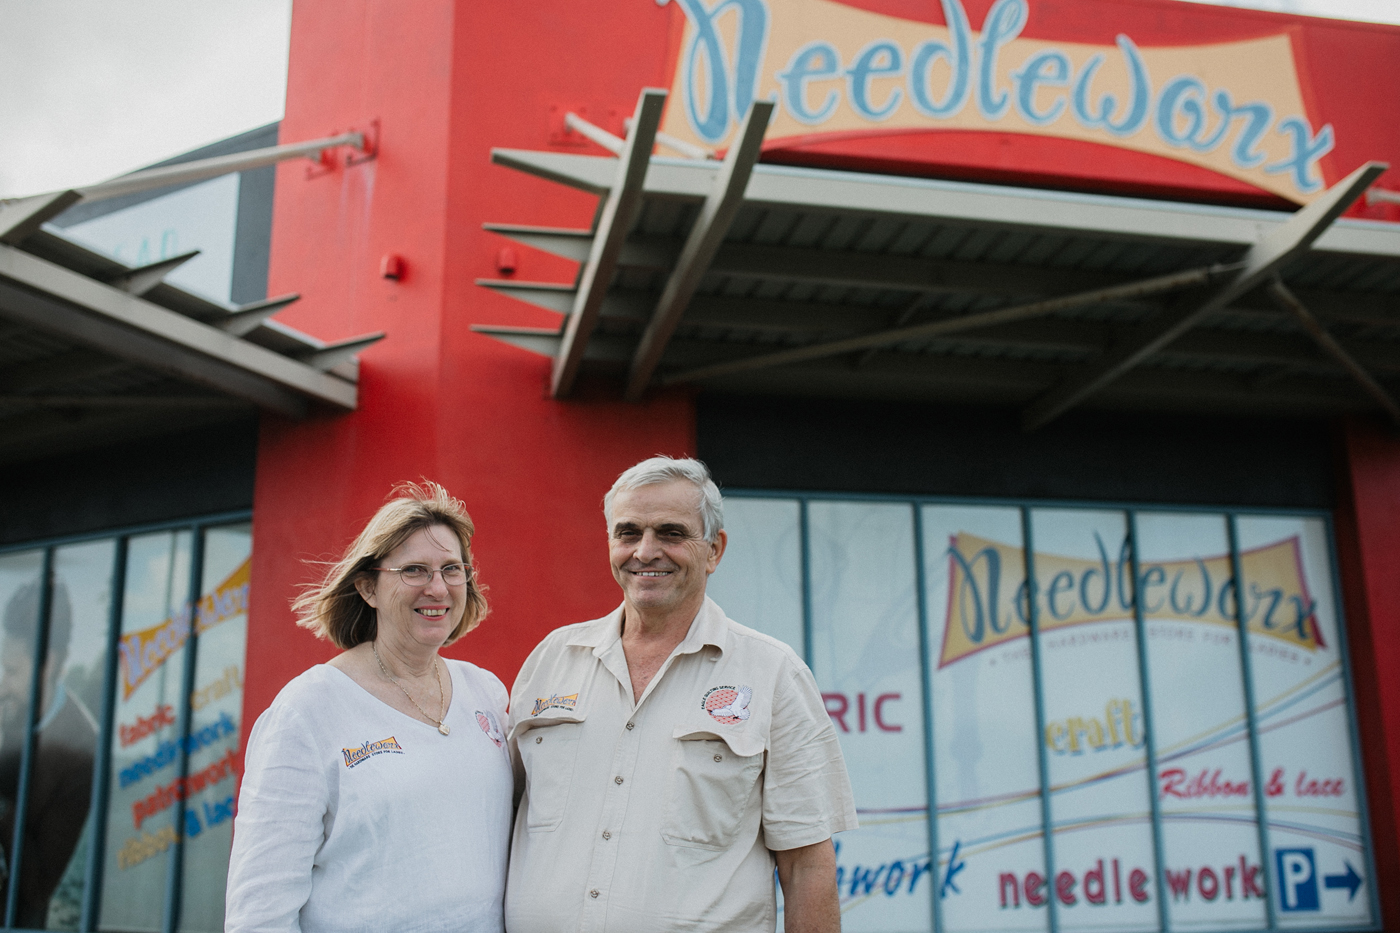 Richard and Ann Giumelli in front of Needleworx store